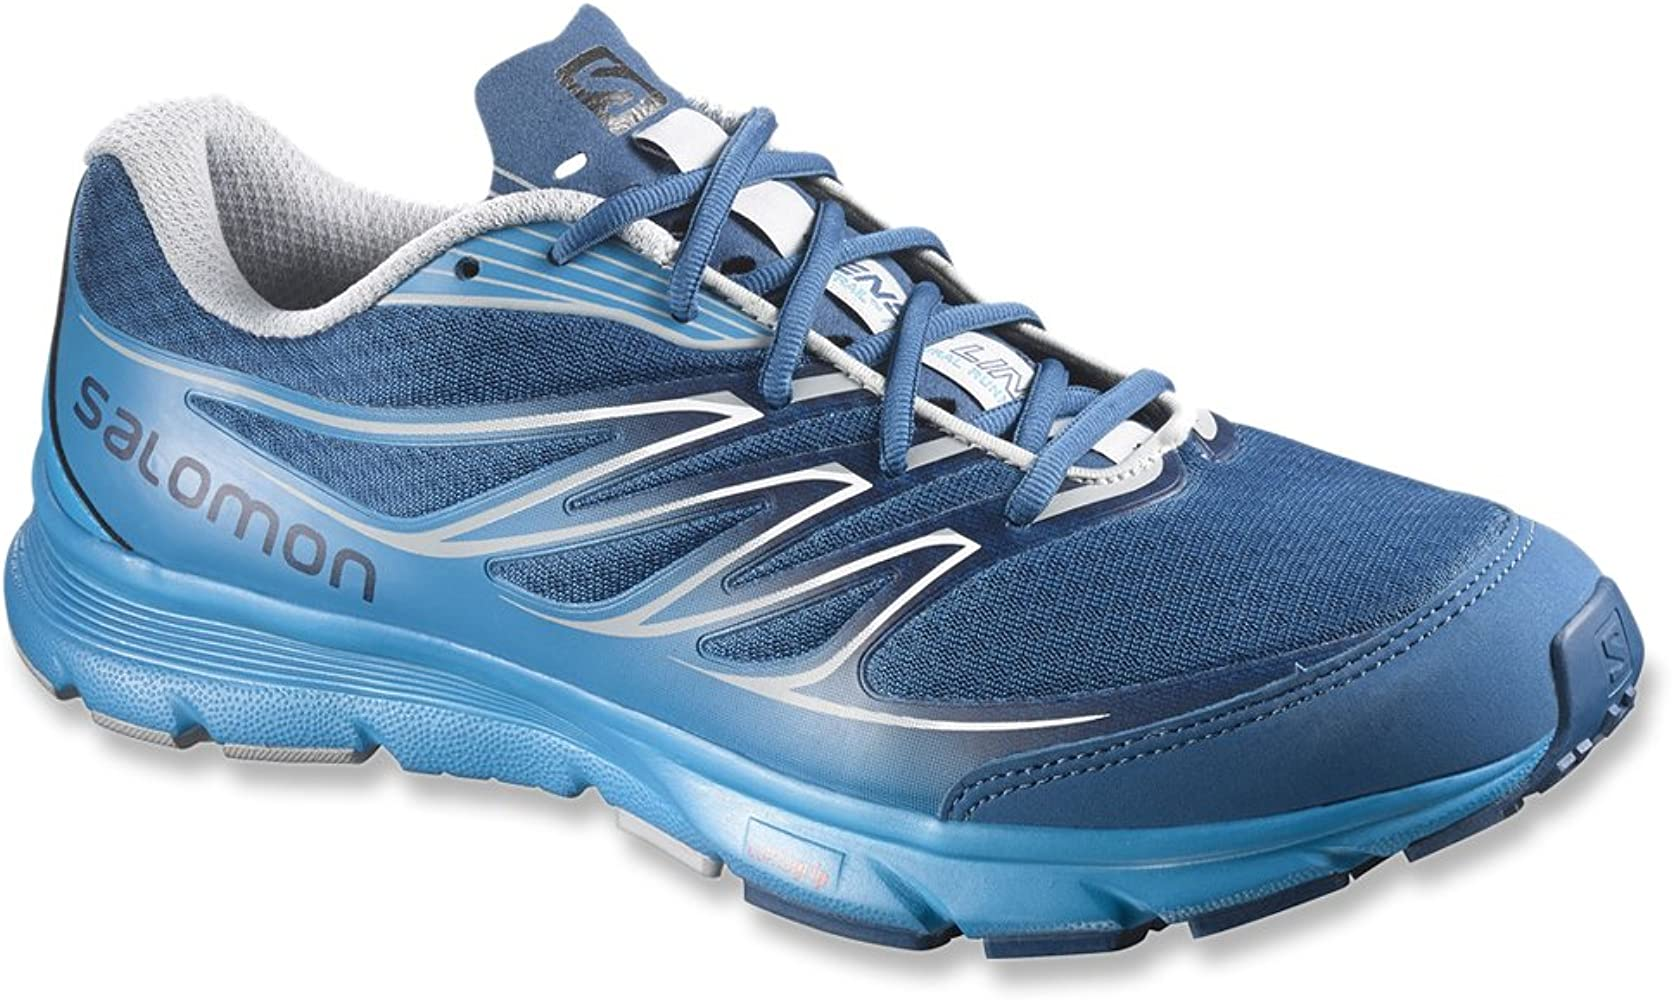 Salomon Sense Link Zapatillas de Running, Color Azul, Talla 48 EU ...